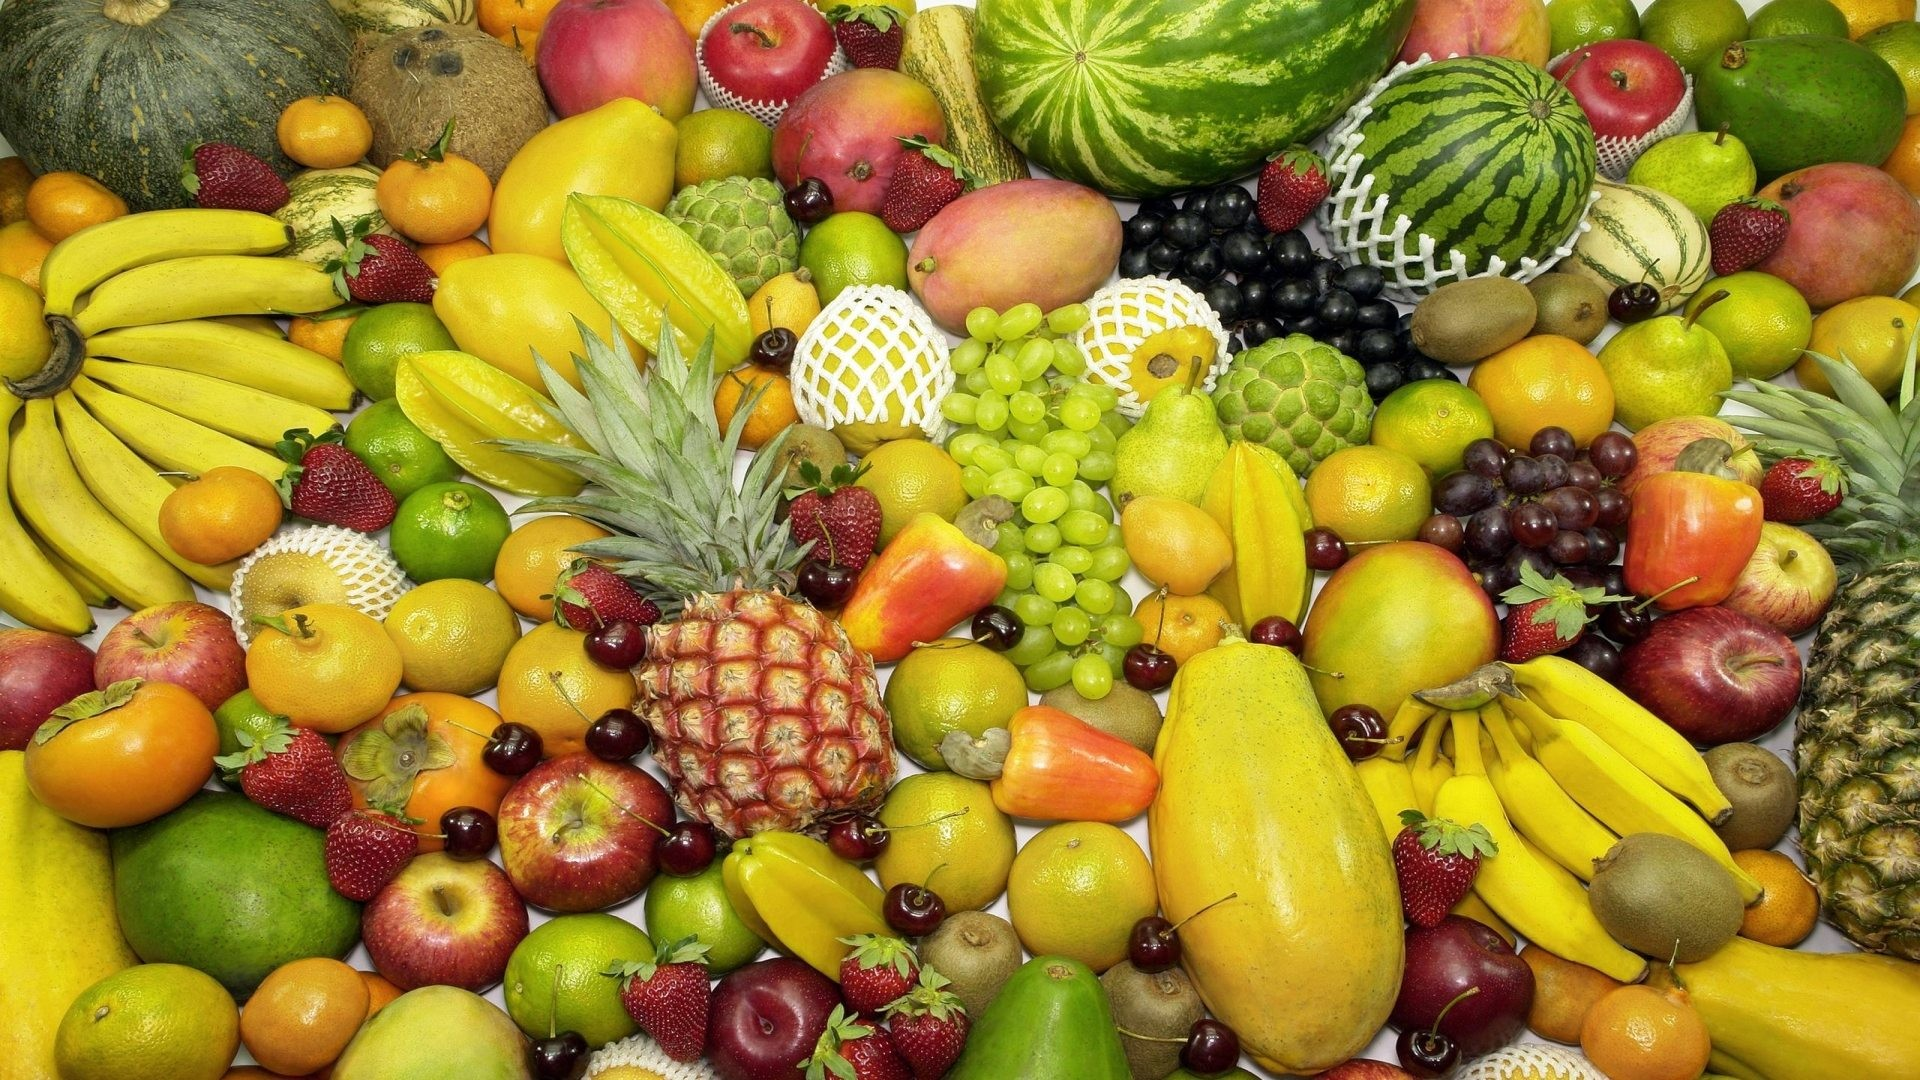 Res: 1920x1080, Fruit Wallpapers Wallpaper Cave Of Hd Wallpapers Of Fruits